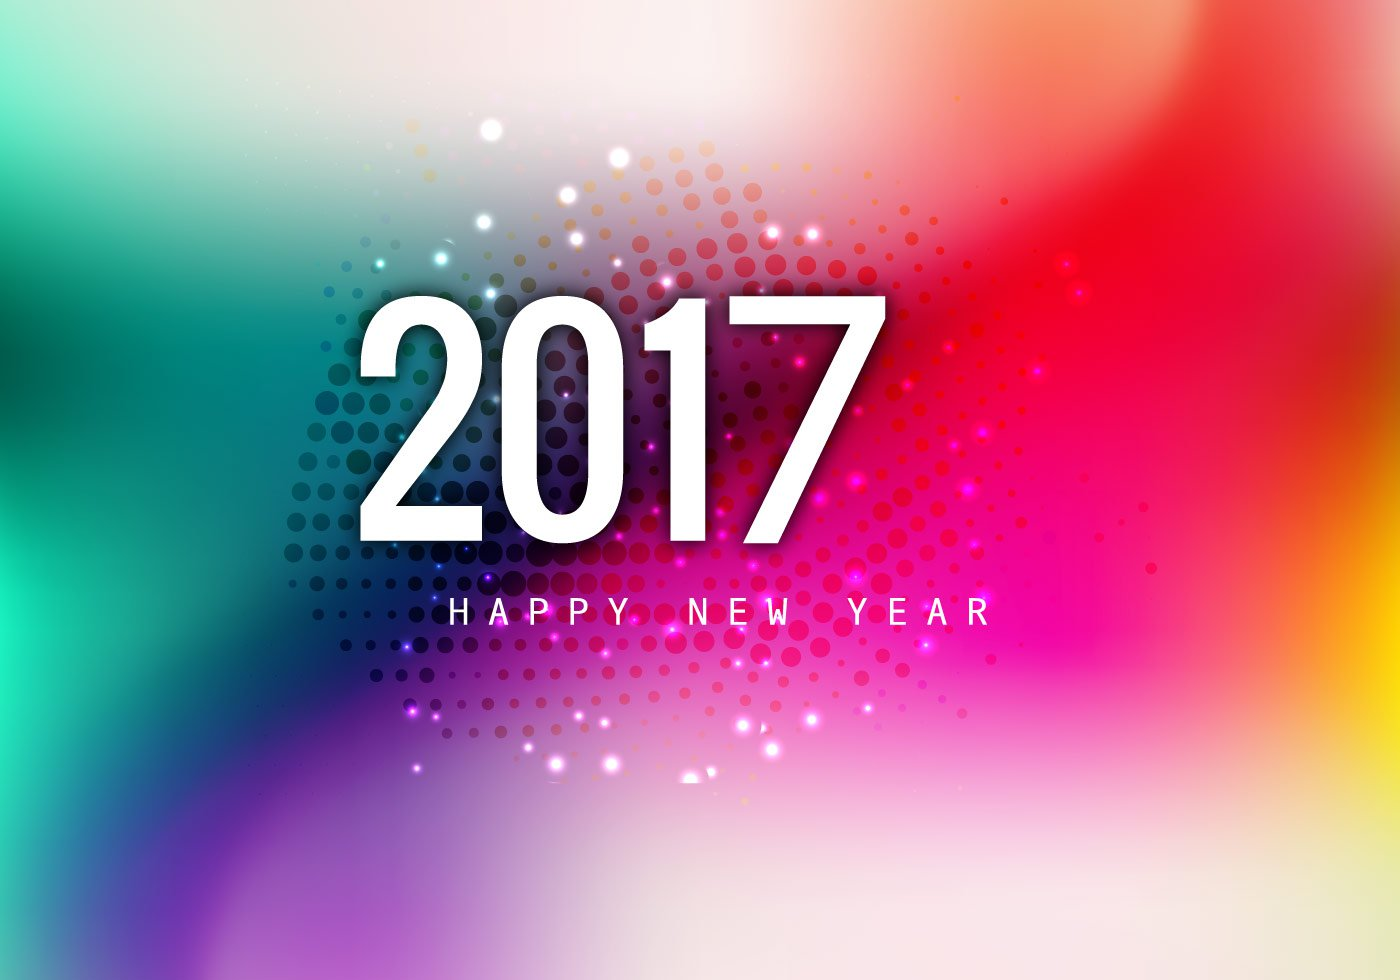 Happy New Year 2017 Live Wallpaper